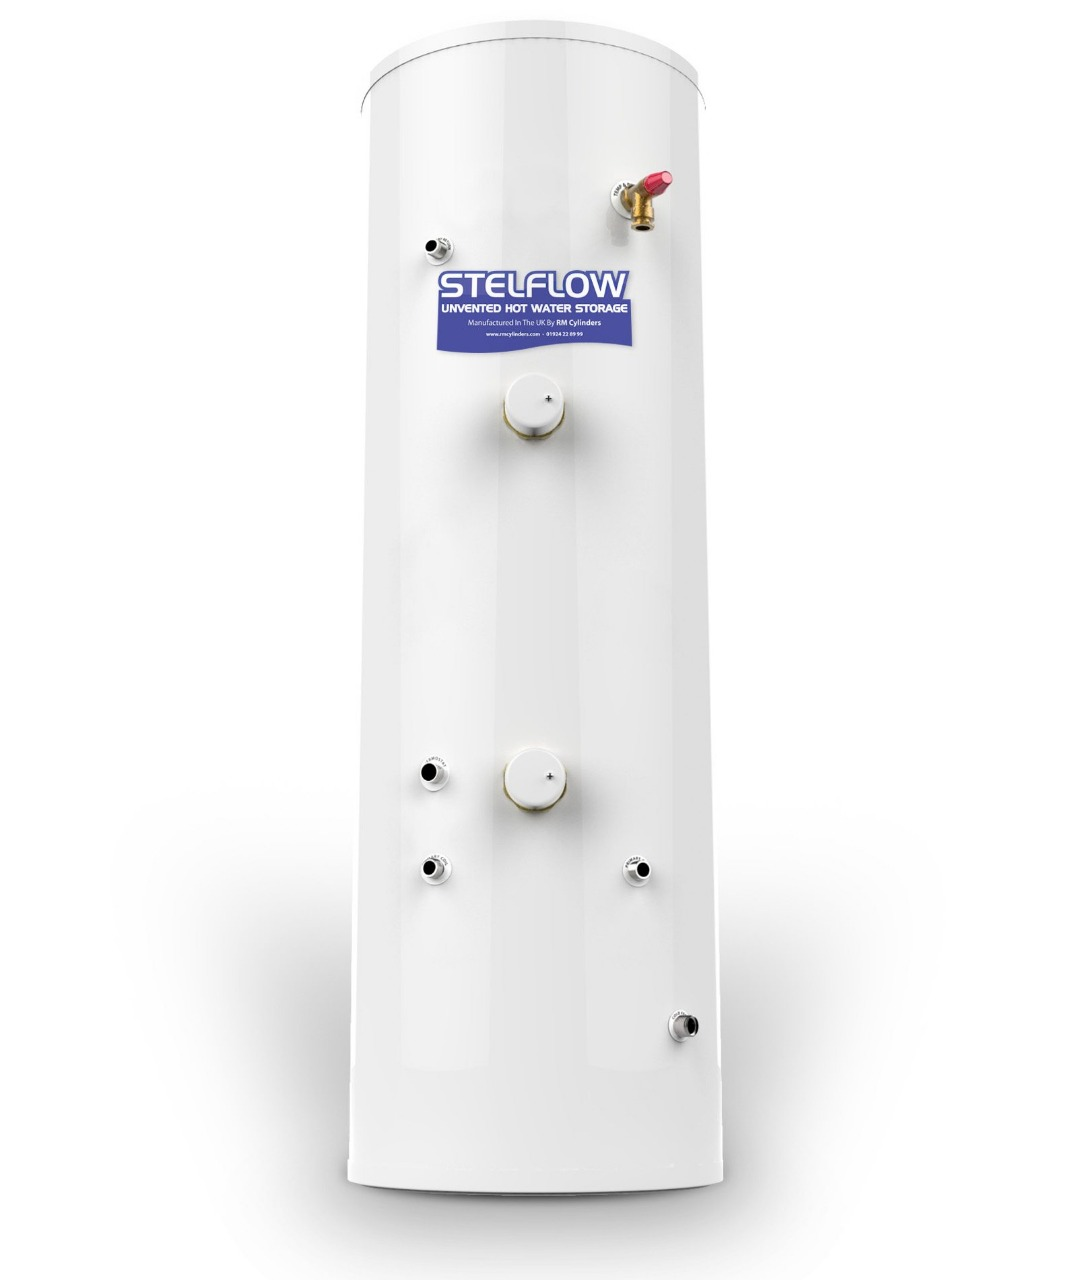 https://www.mepstock.co.uk/admin/images/Stelflow (RM) 120 L Direct Slimline Unvented Cylinder -  MEP Stock Ltd.jpeg